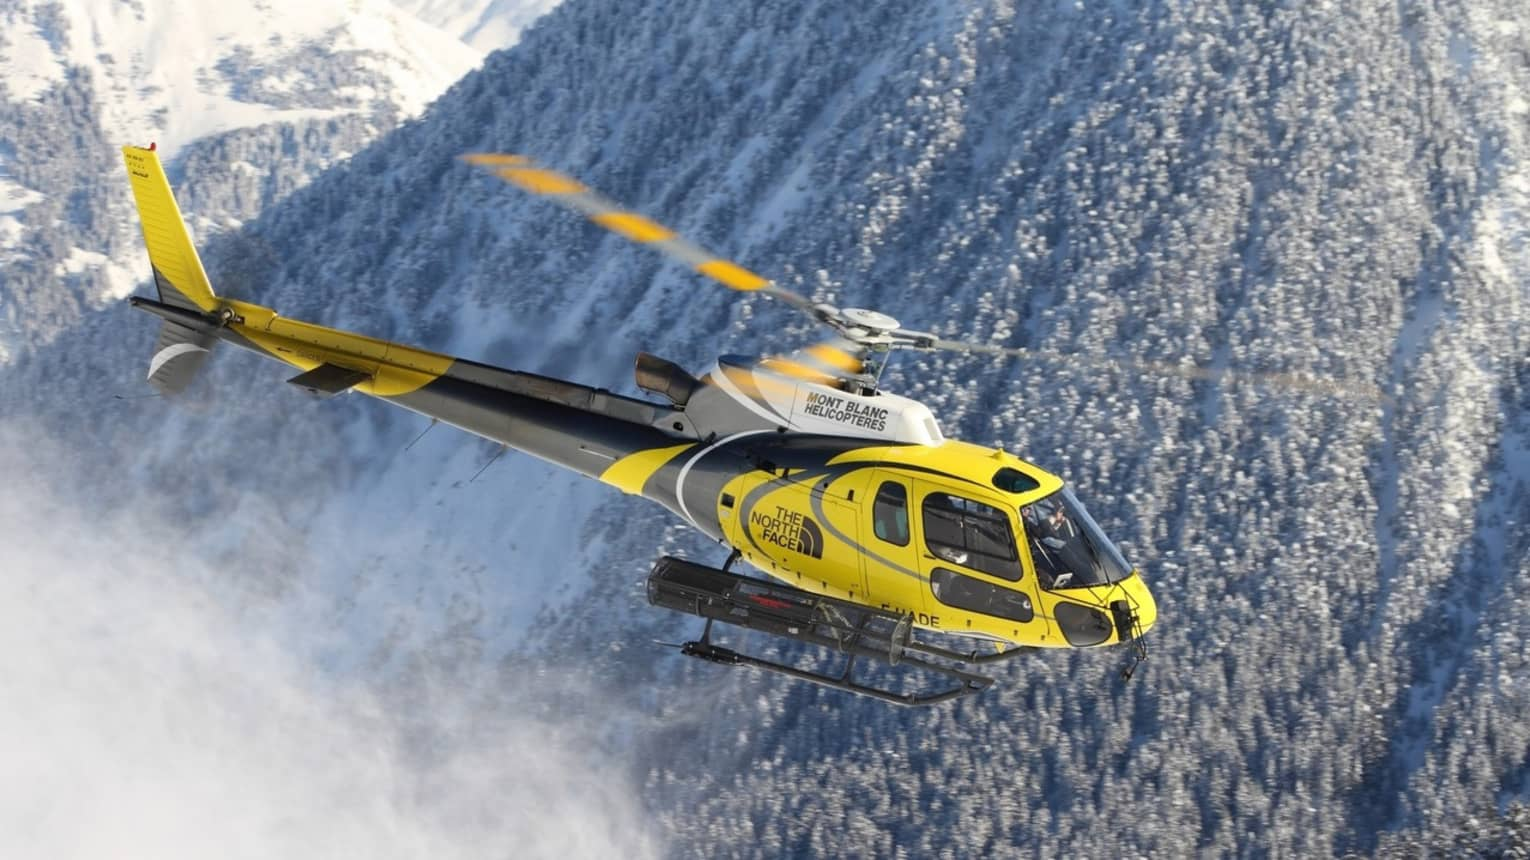 A yellow helicopter flies through a snow covered mountain in the swiss alps